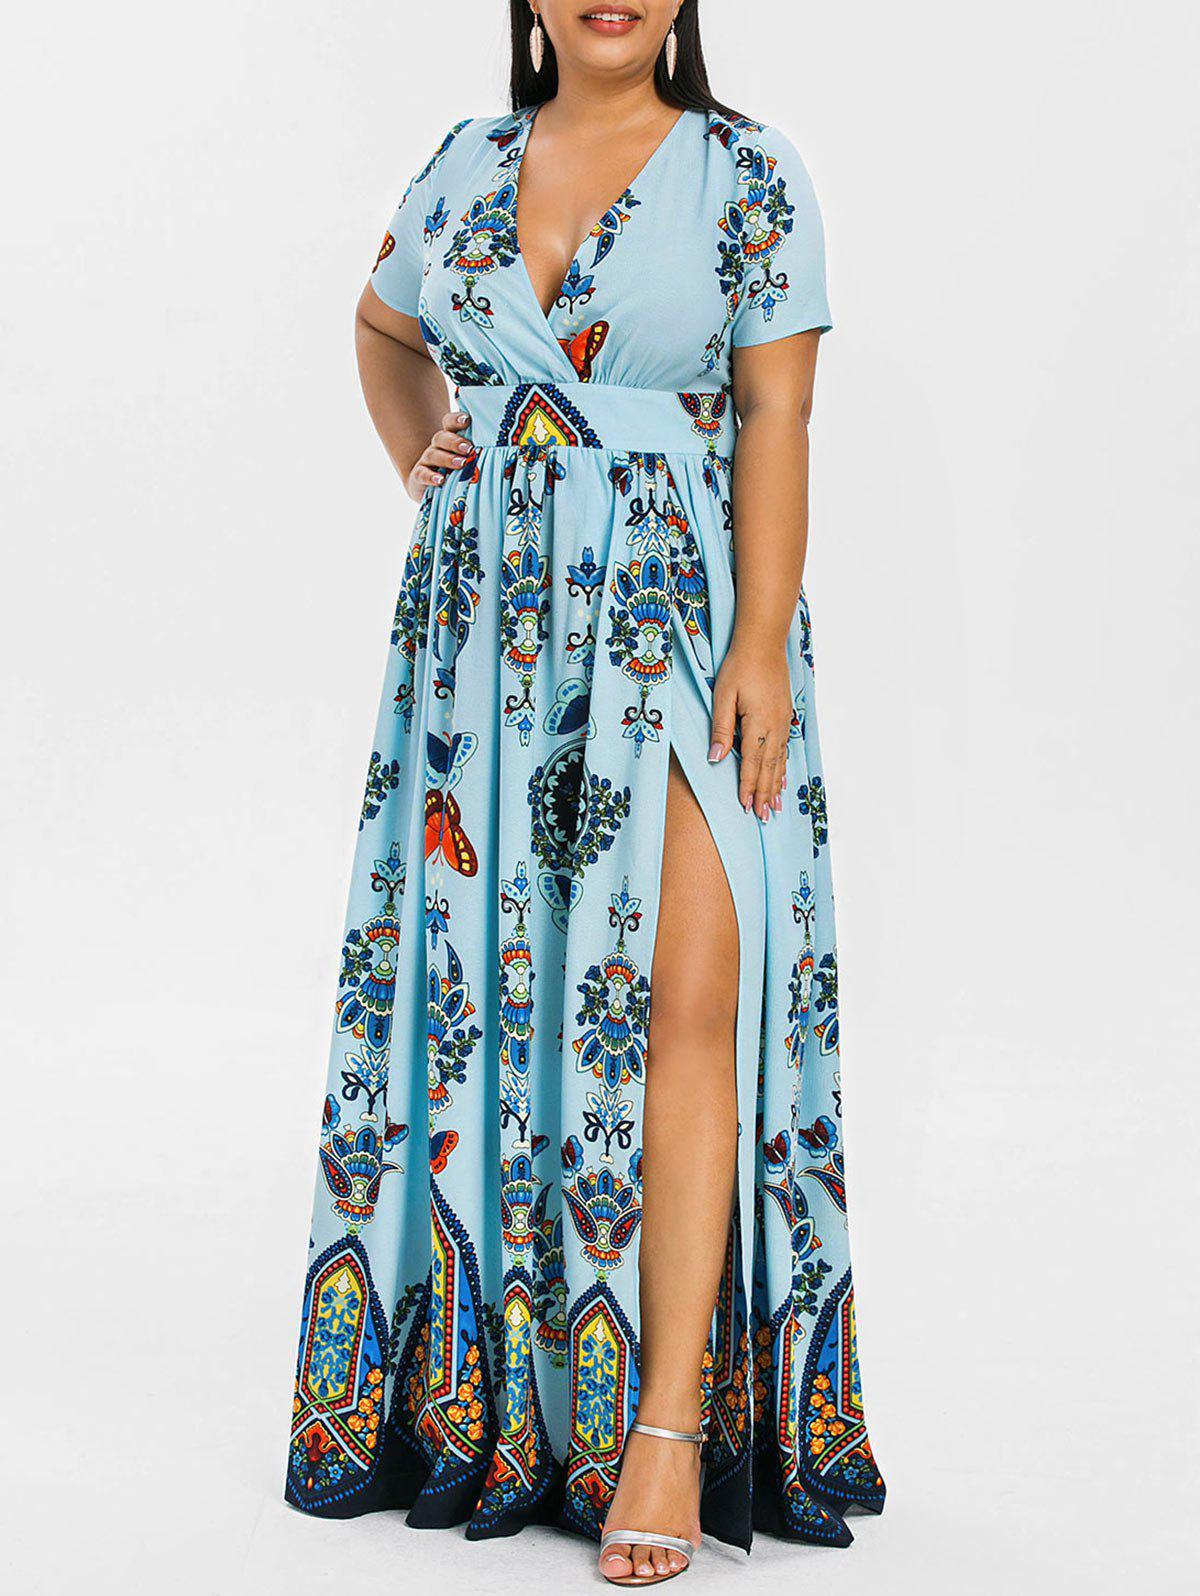 Plus Size Printed Maxi Split Dress - LIGHT BLUE L